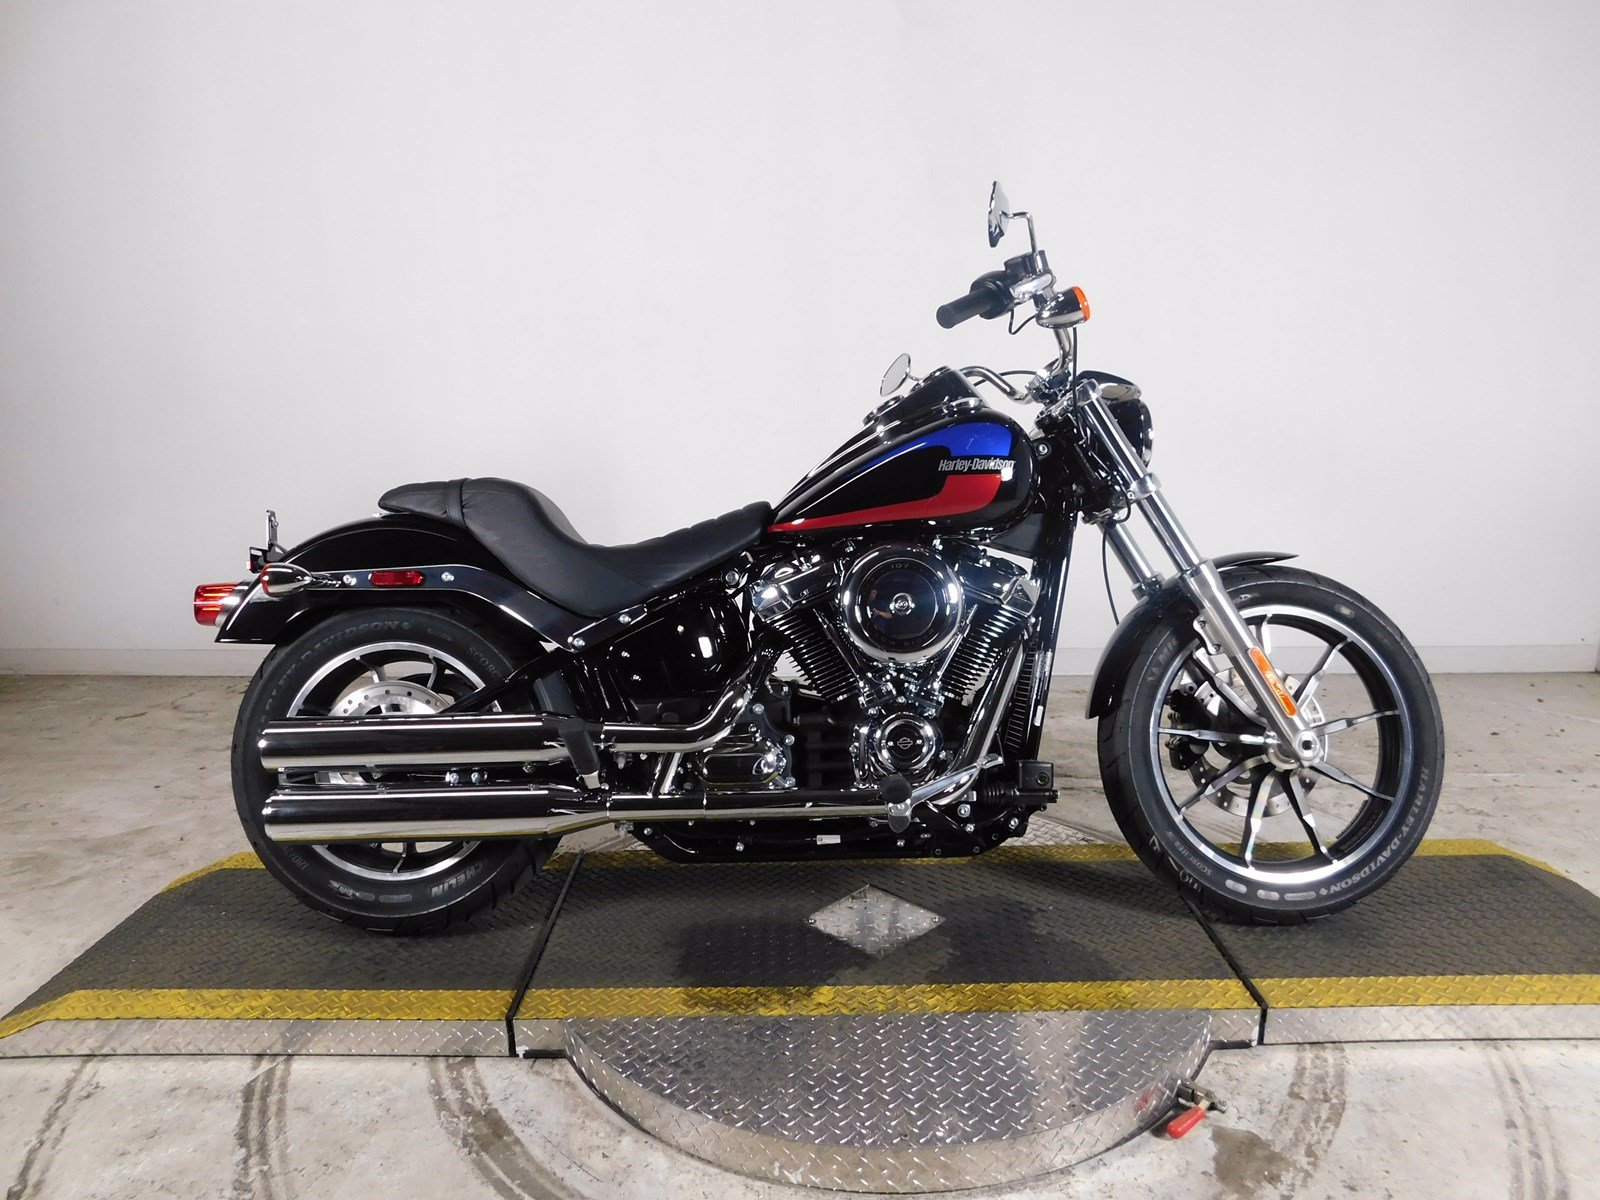 New 2020 Harley-Davidson Softail Low Rider FXLR